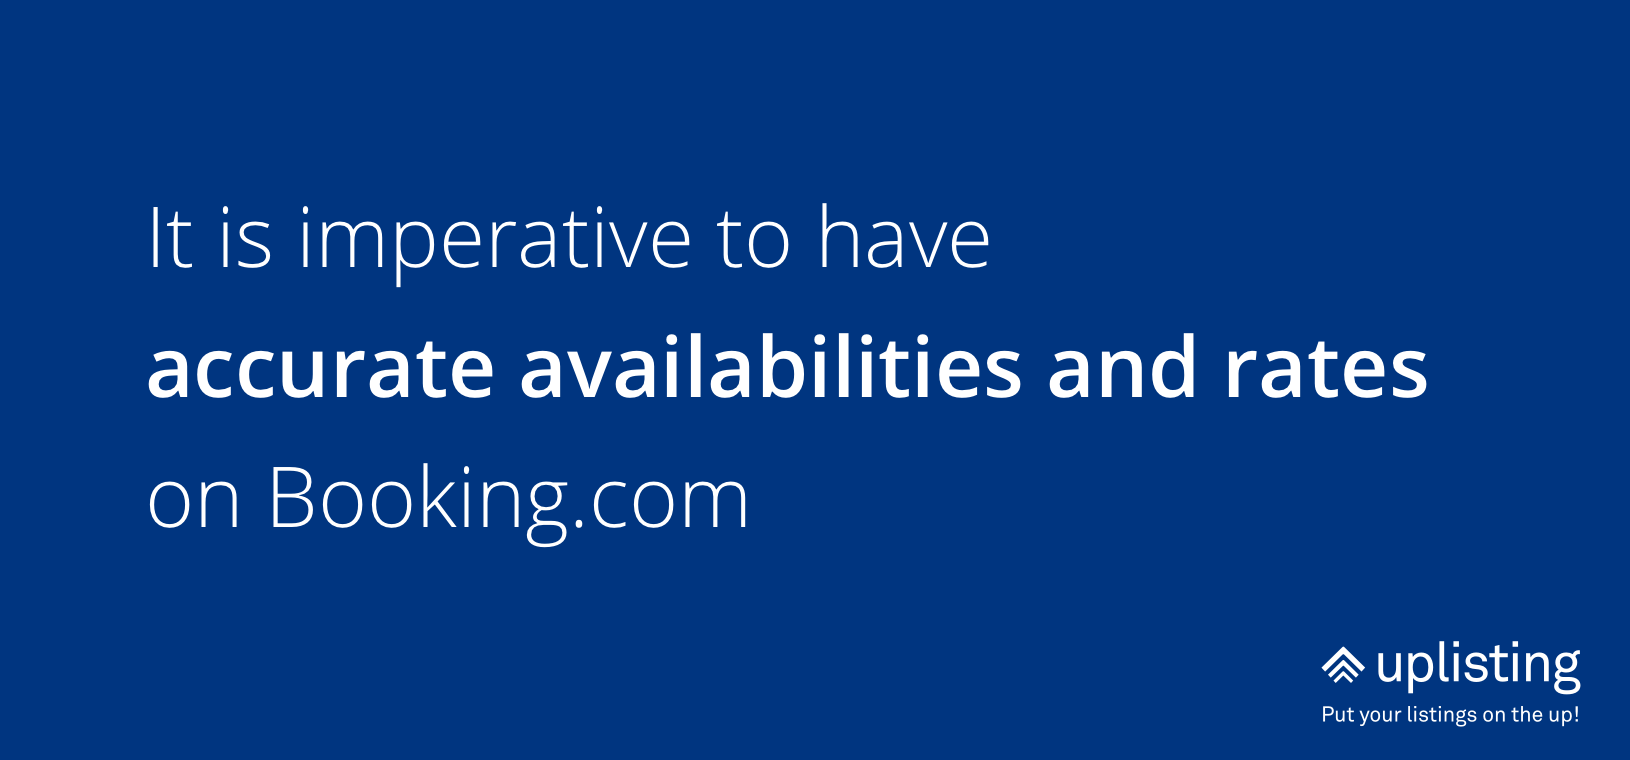 It-is-imperative-to-have-accurate-availabilities-and-rates-on-Booking.com-1